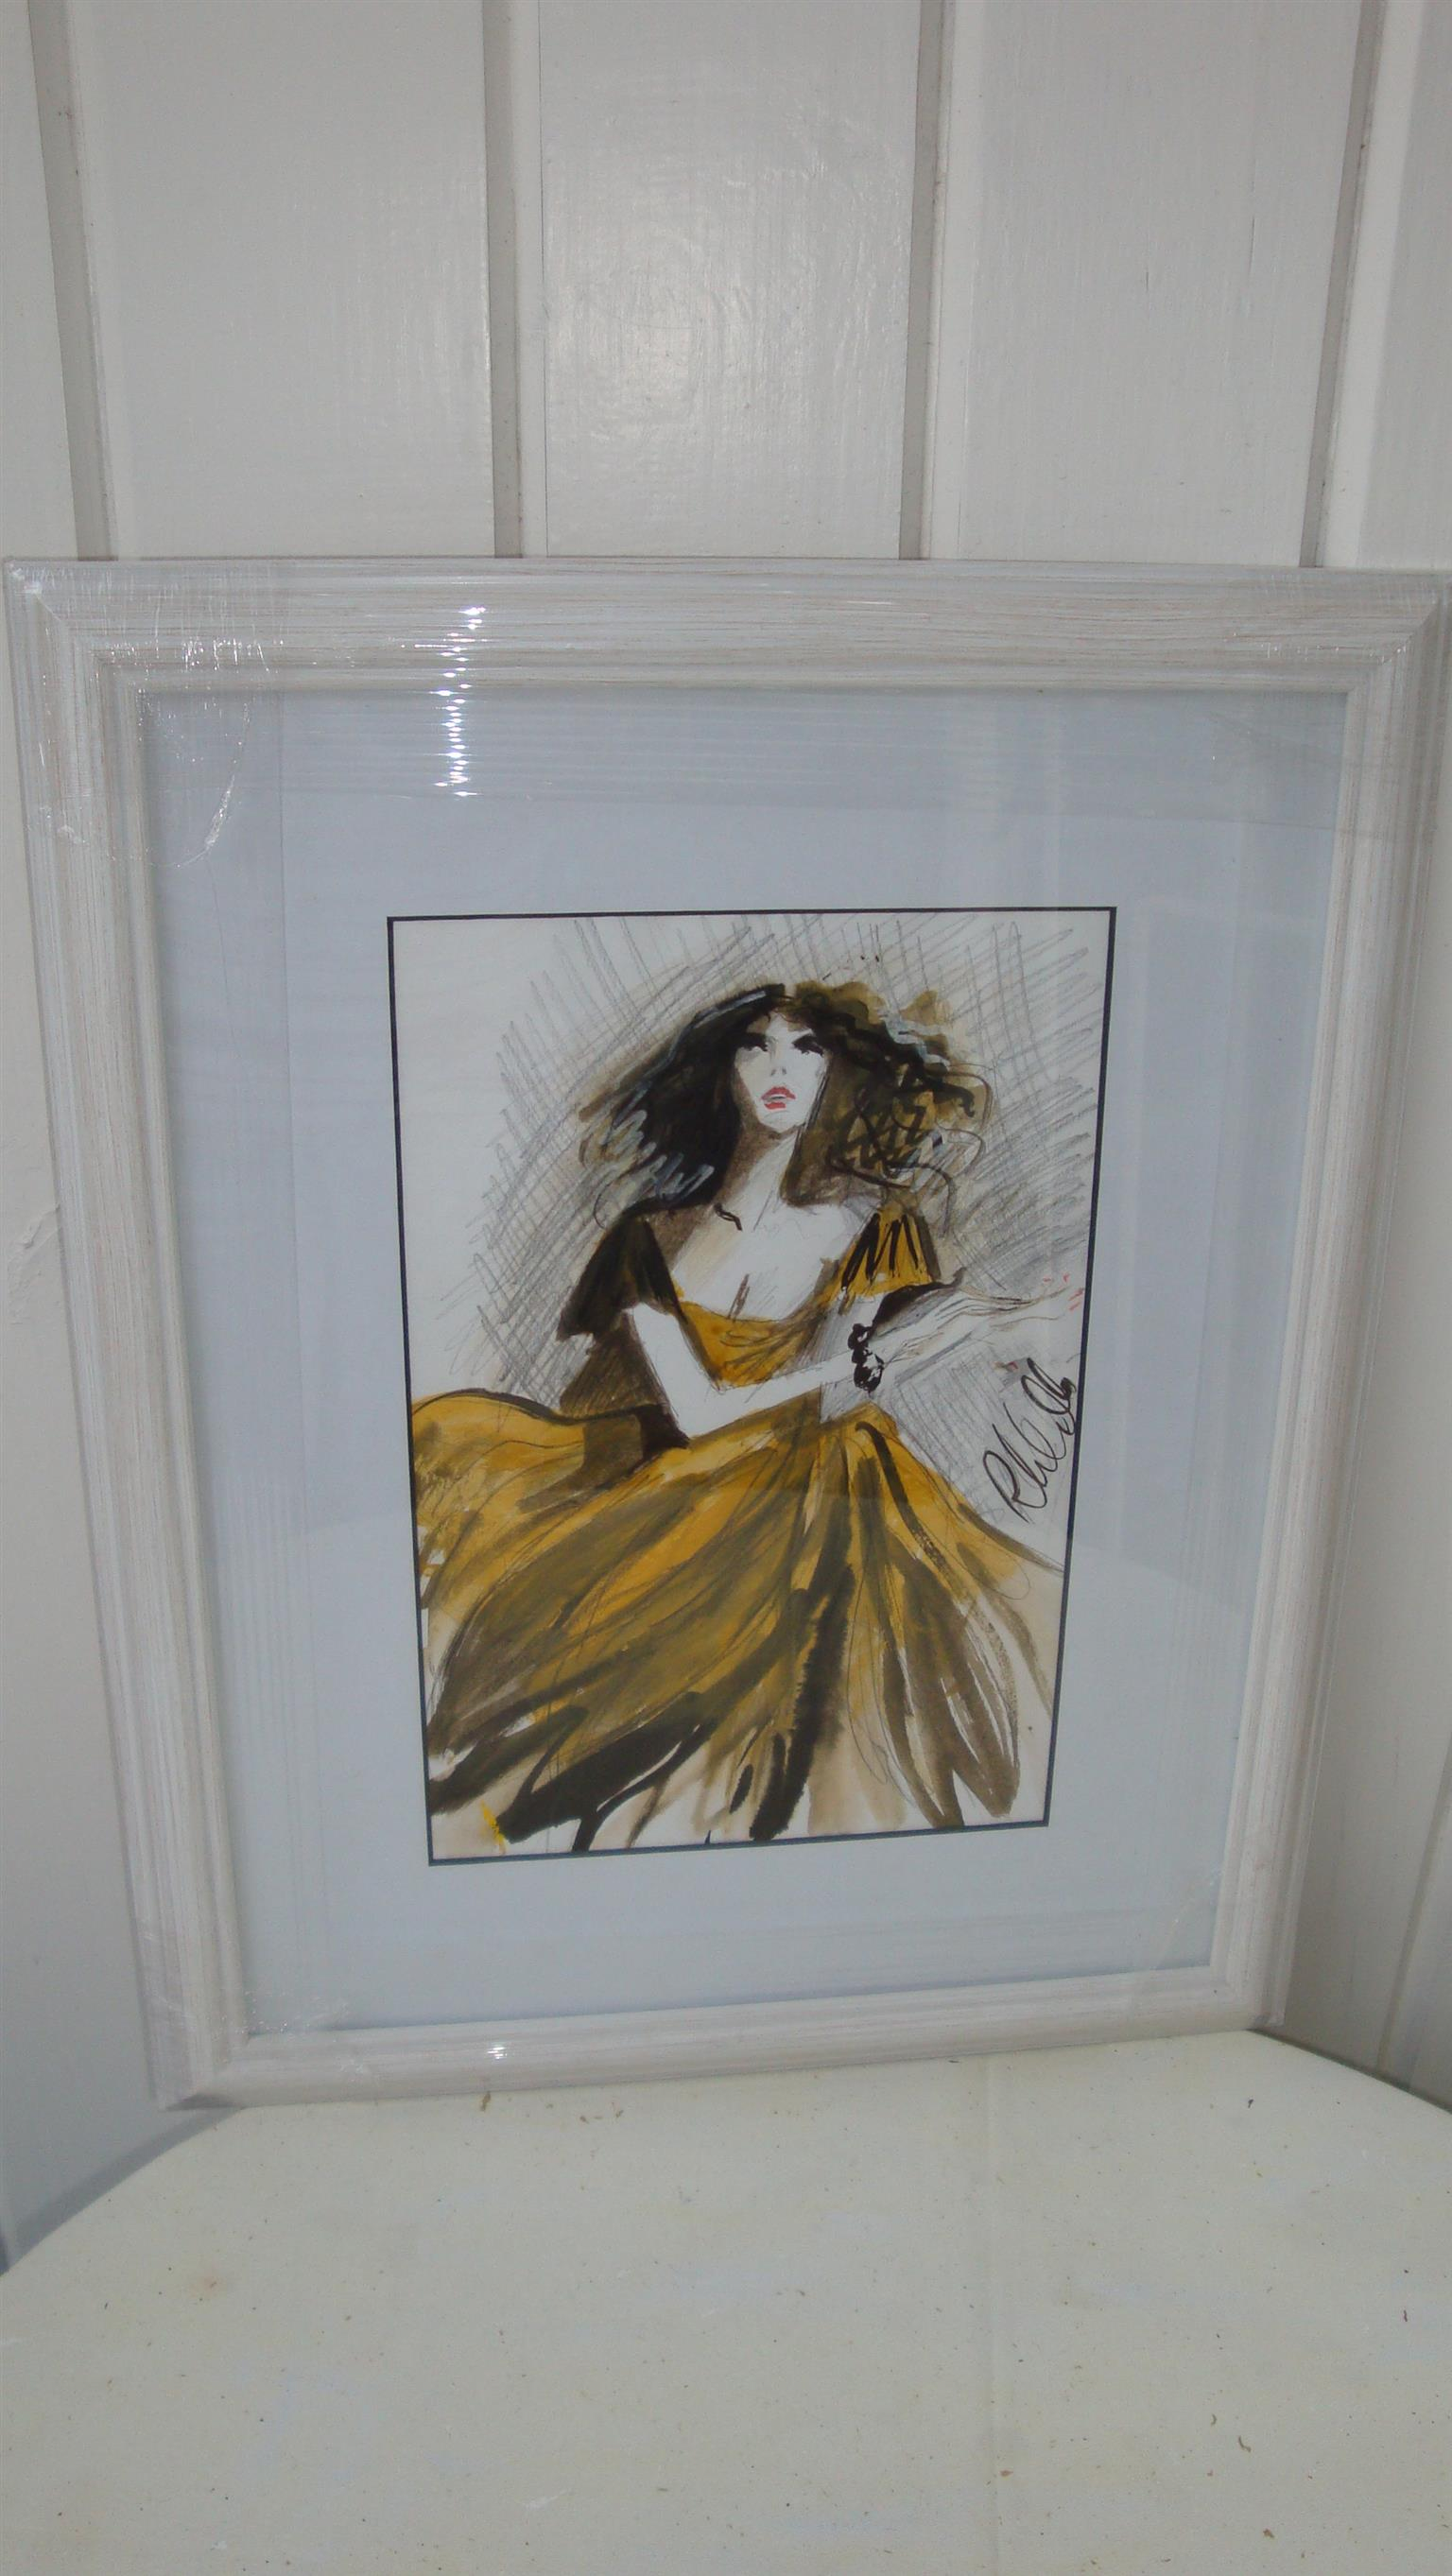 Affordable, original and framed art by Irish artist Ros Webb - girl with yellow and black dress